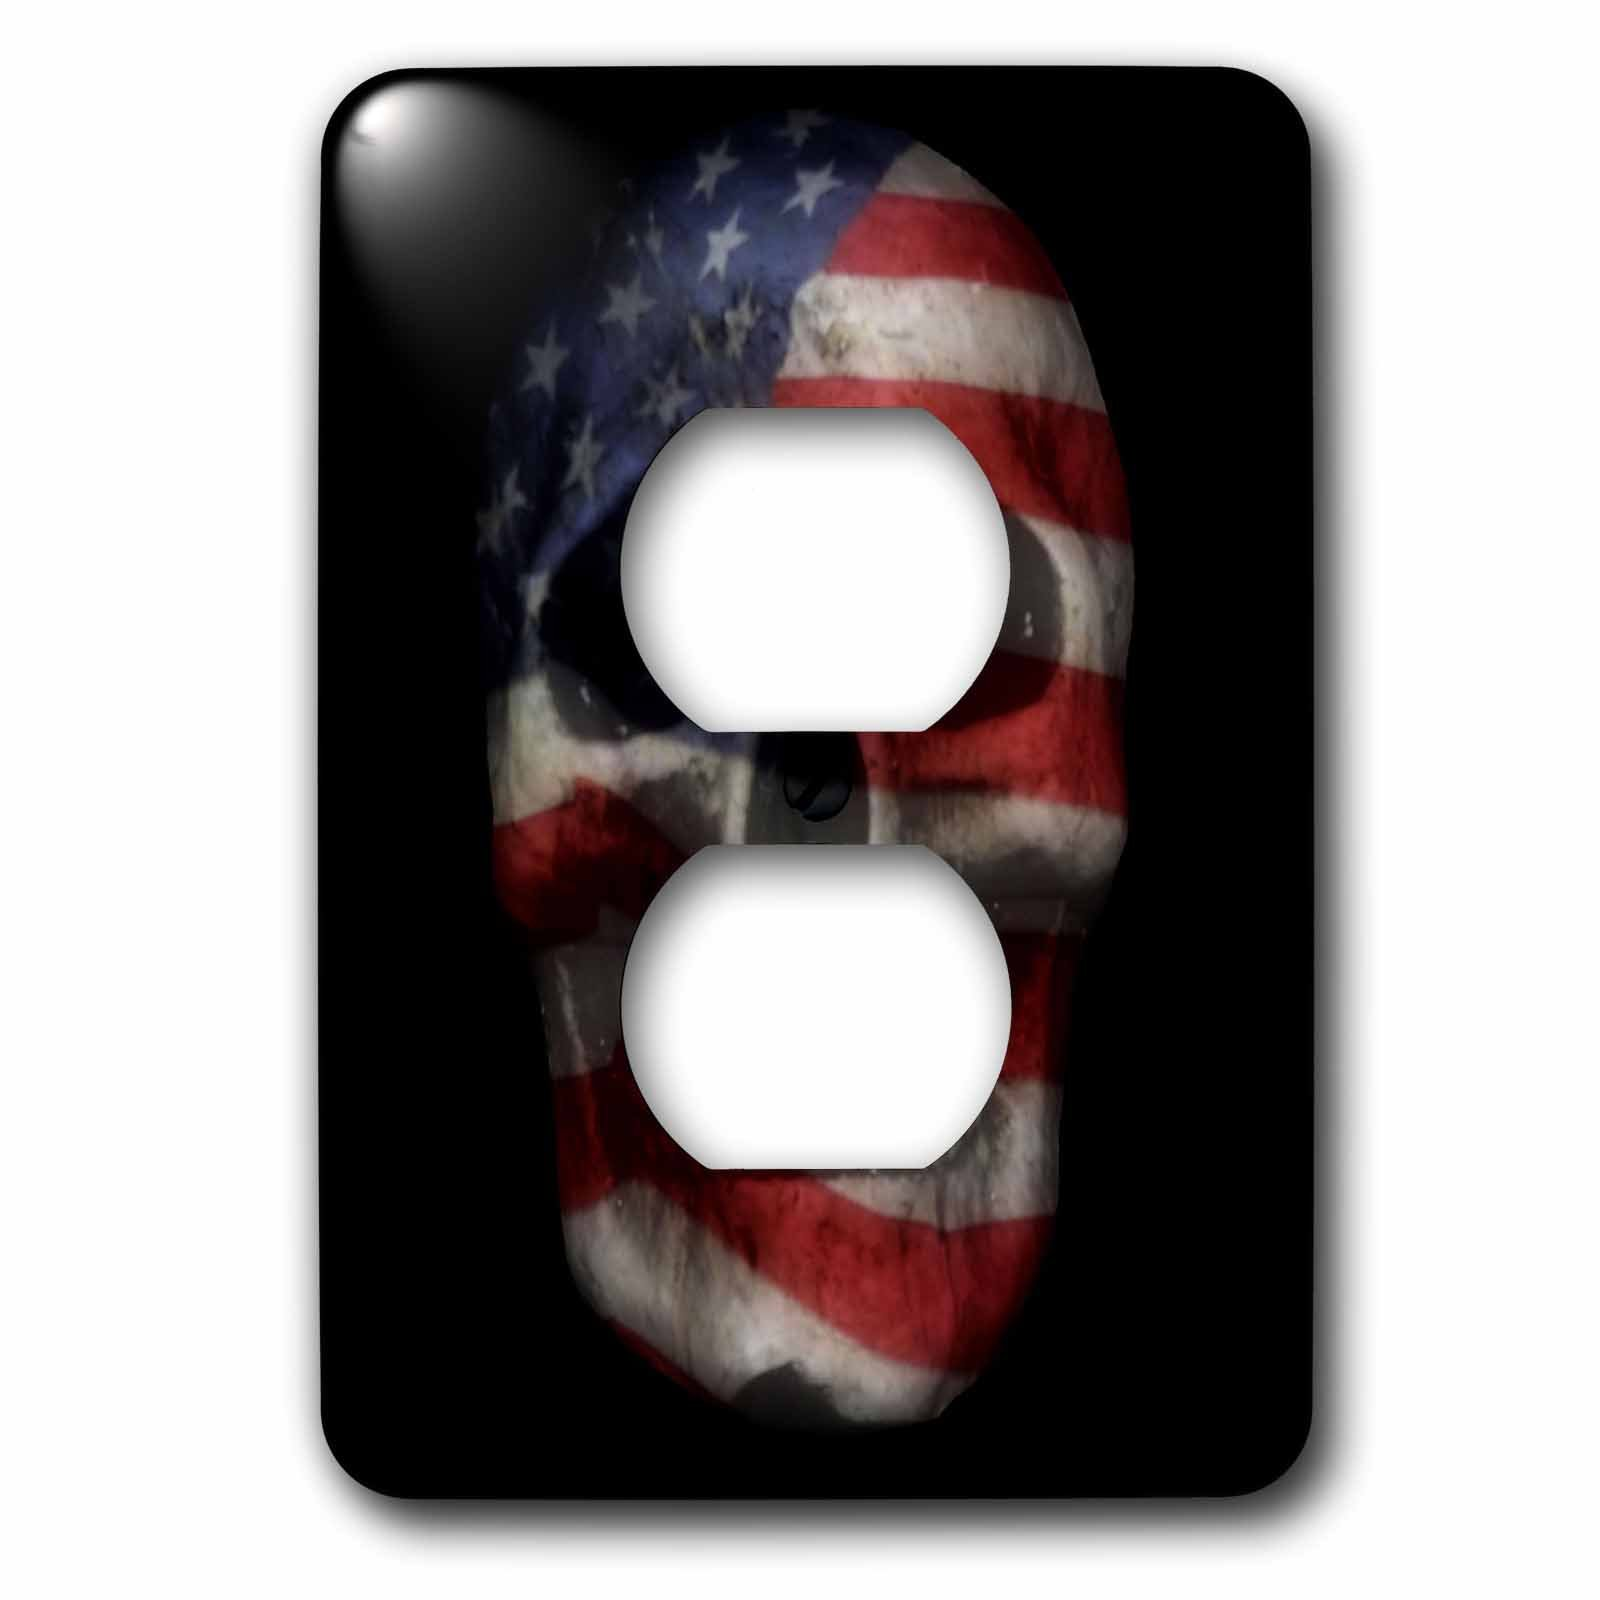 3dRose WhiteOaks Photography and Artwork - Skulls - Flag on Skull is an art piece I did of skulls and overlaying a flag - Light Switch Covers - 2 plug outlet cover (lsp_265362_6)